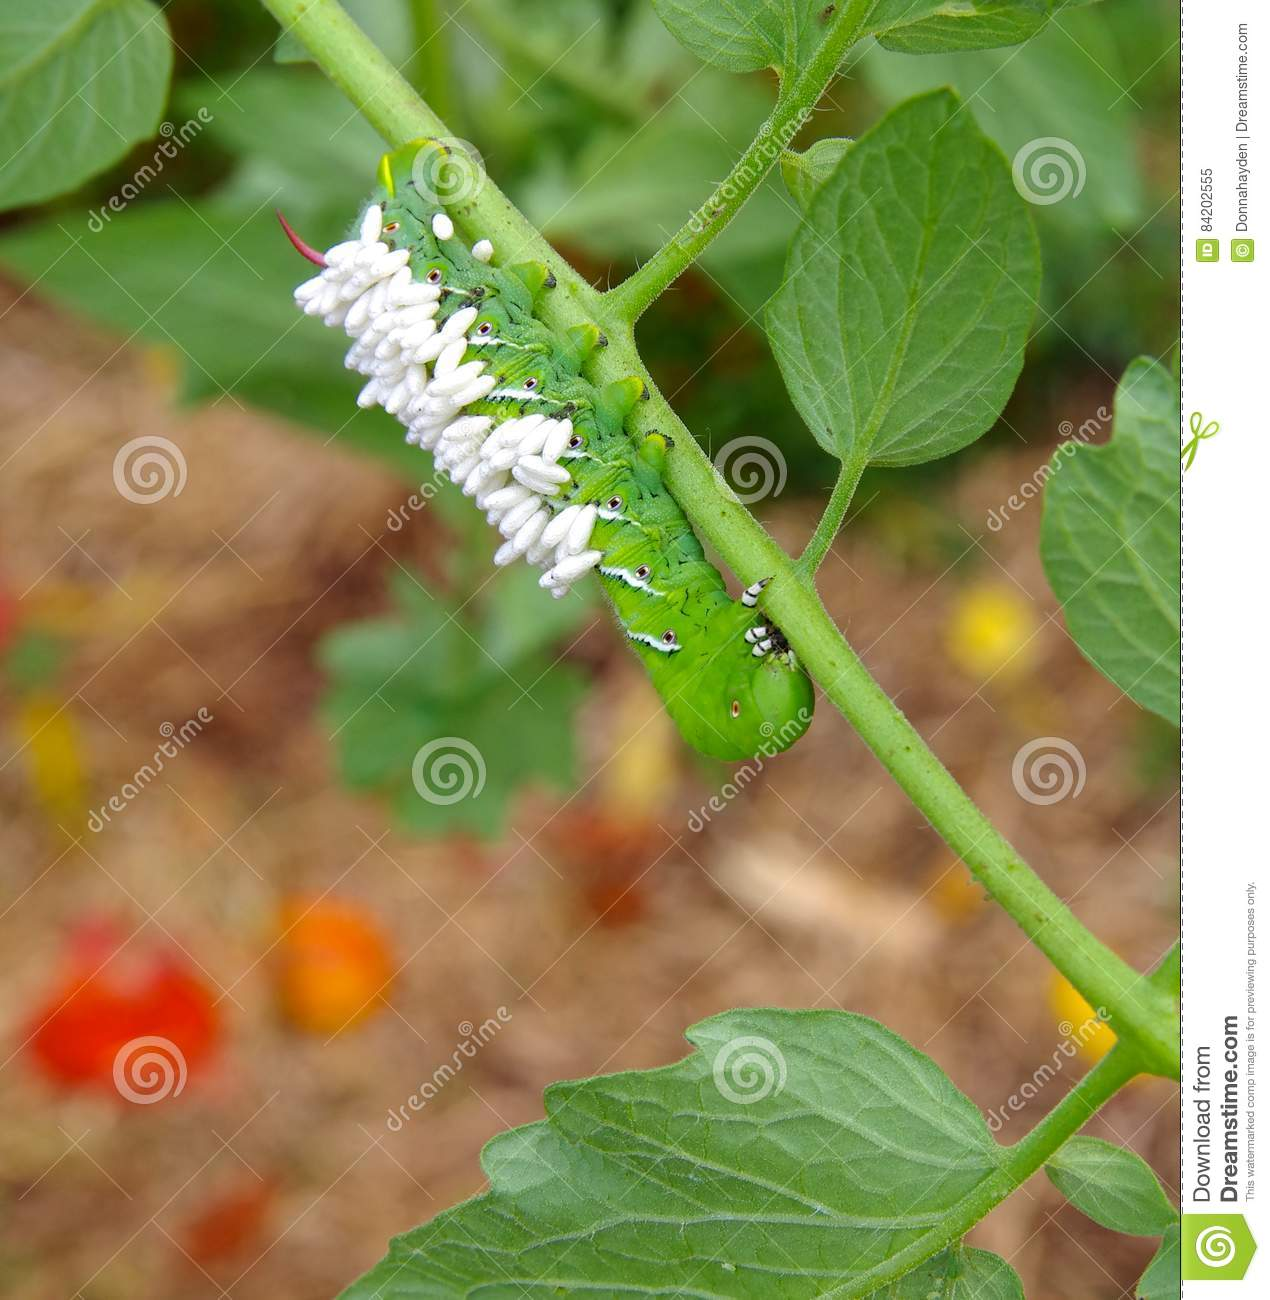 Tobacco Horn Worm On Nose Royalty-Free Stock Photo